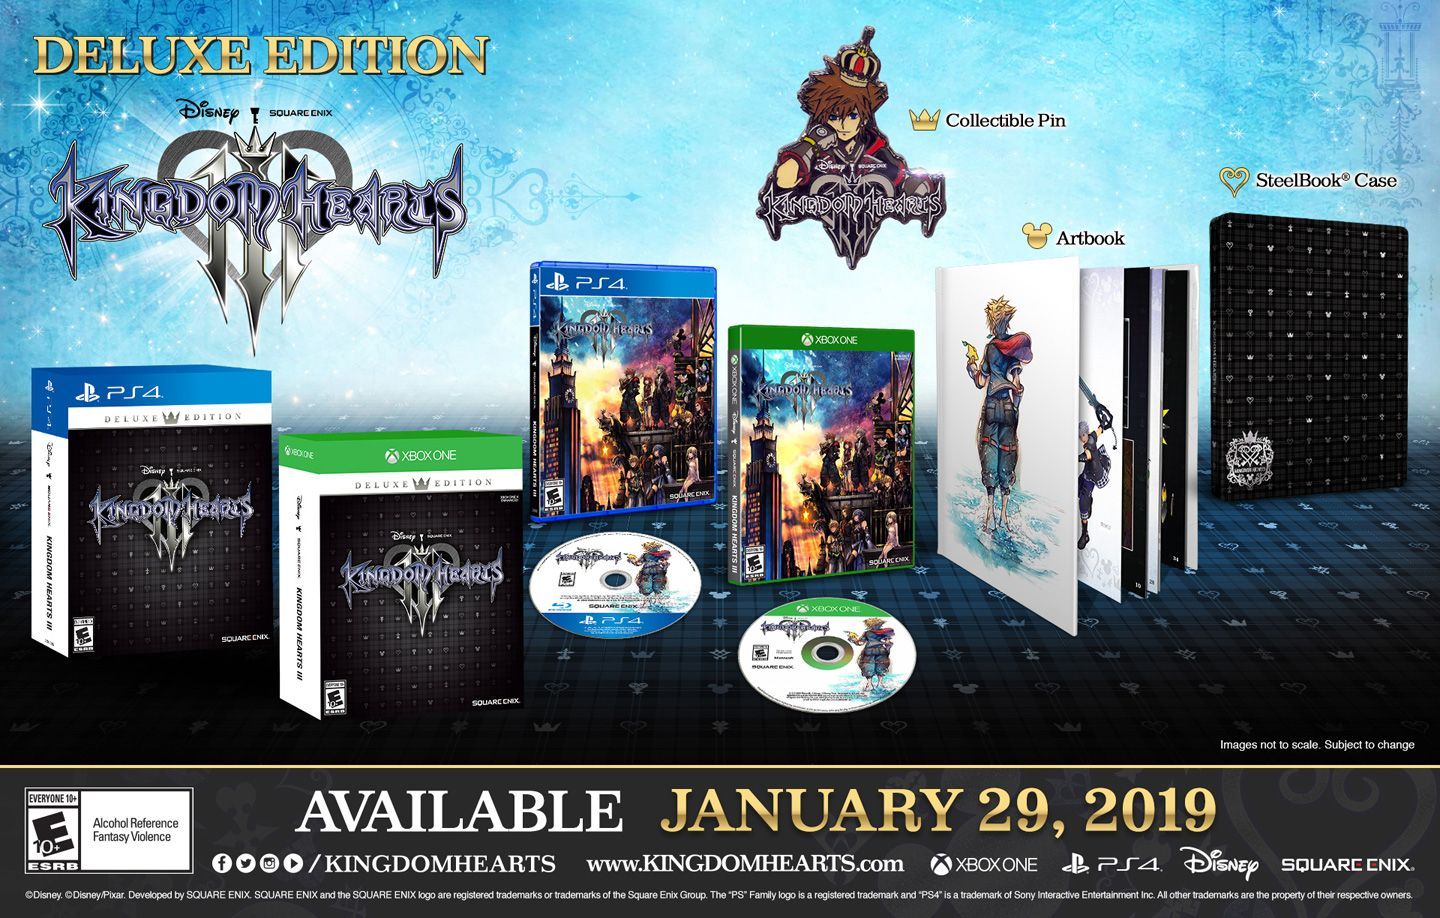 KINGDOM HEARTS III DELUXE EDITION [PS4] | Square Enix Store